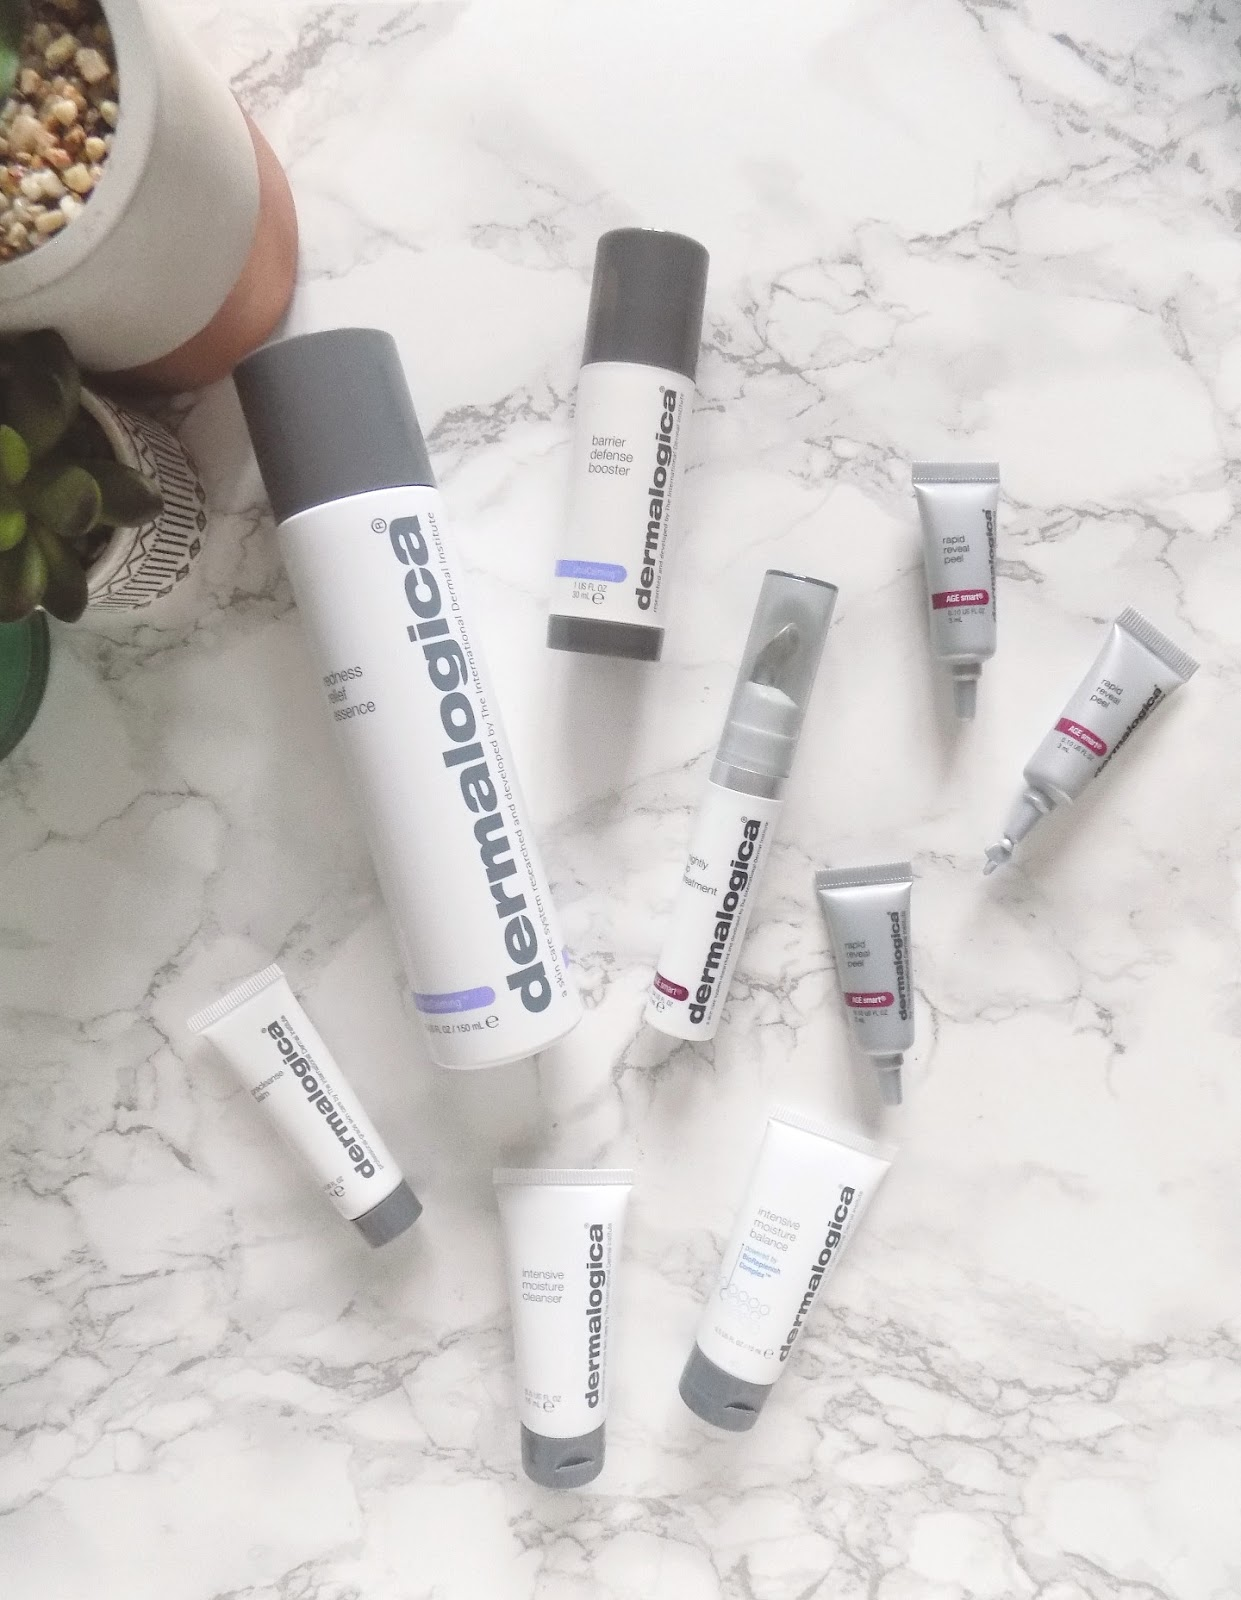 dermalogica winter skin care review